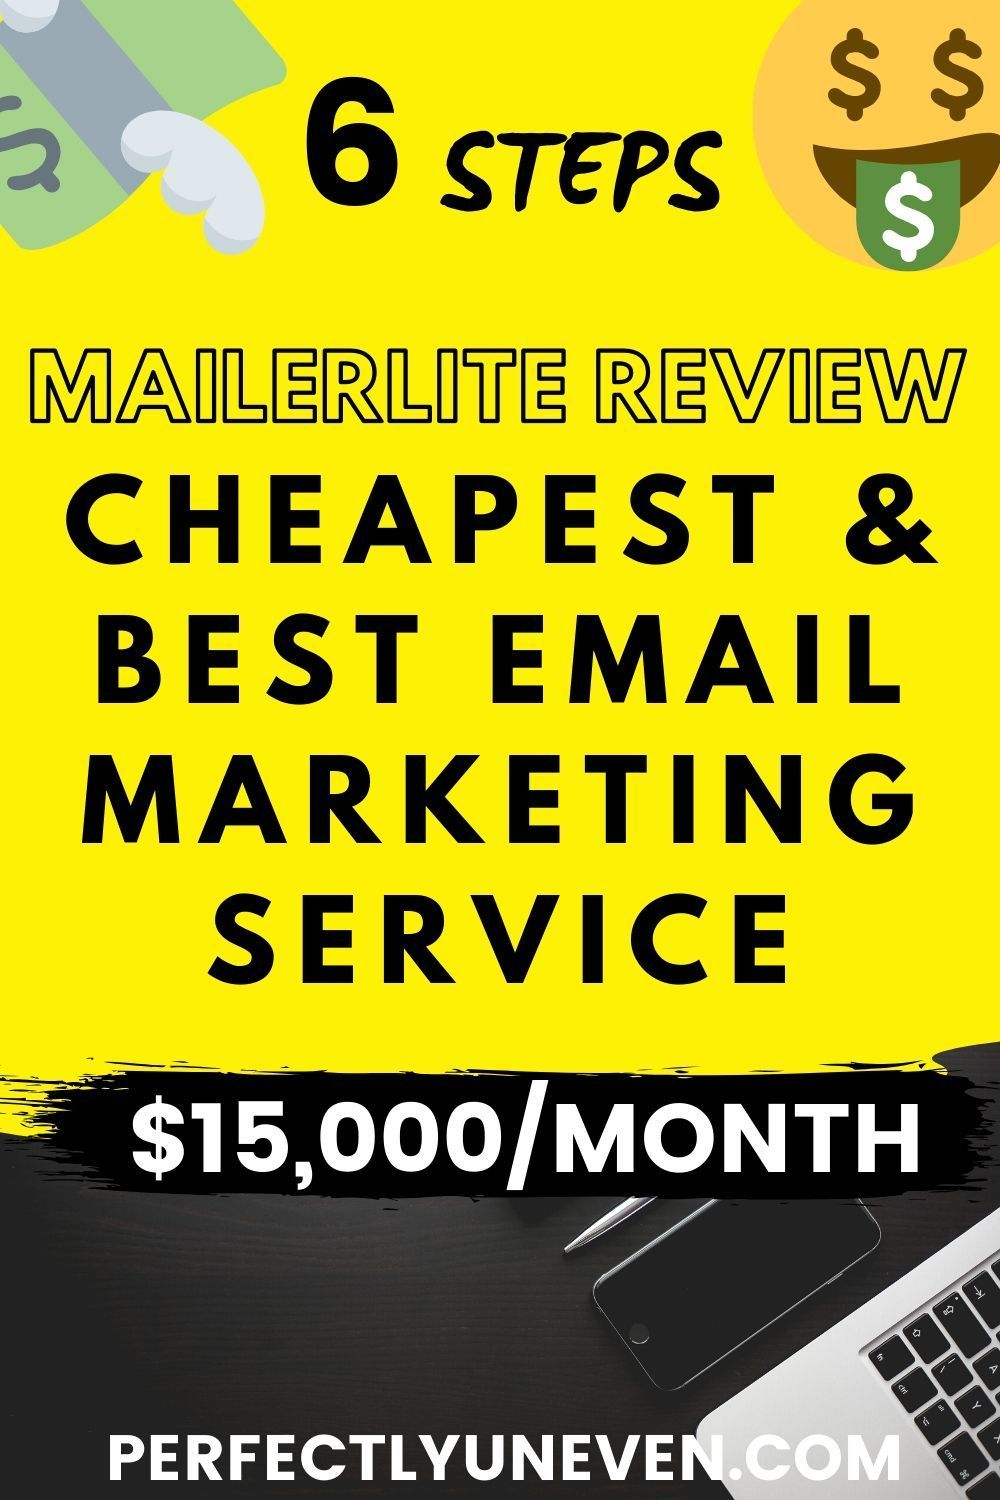 CHEAPEST AND BEST EMAIL MARKETING SERVICE $12K/MON